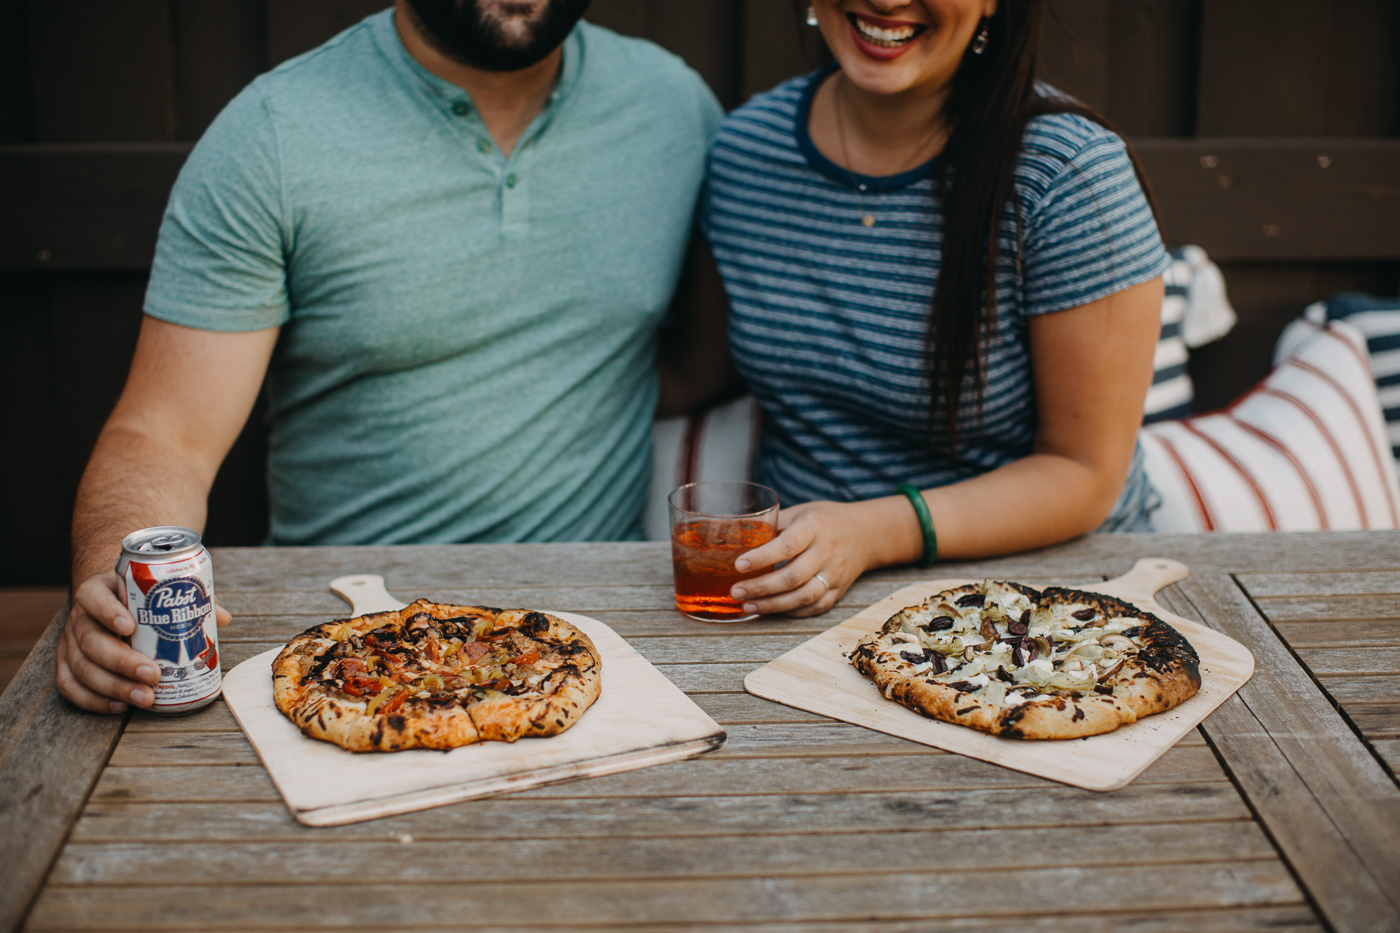 man & woman sitting at patio table enjoying homemade pizzas & drinks for pizza night.